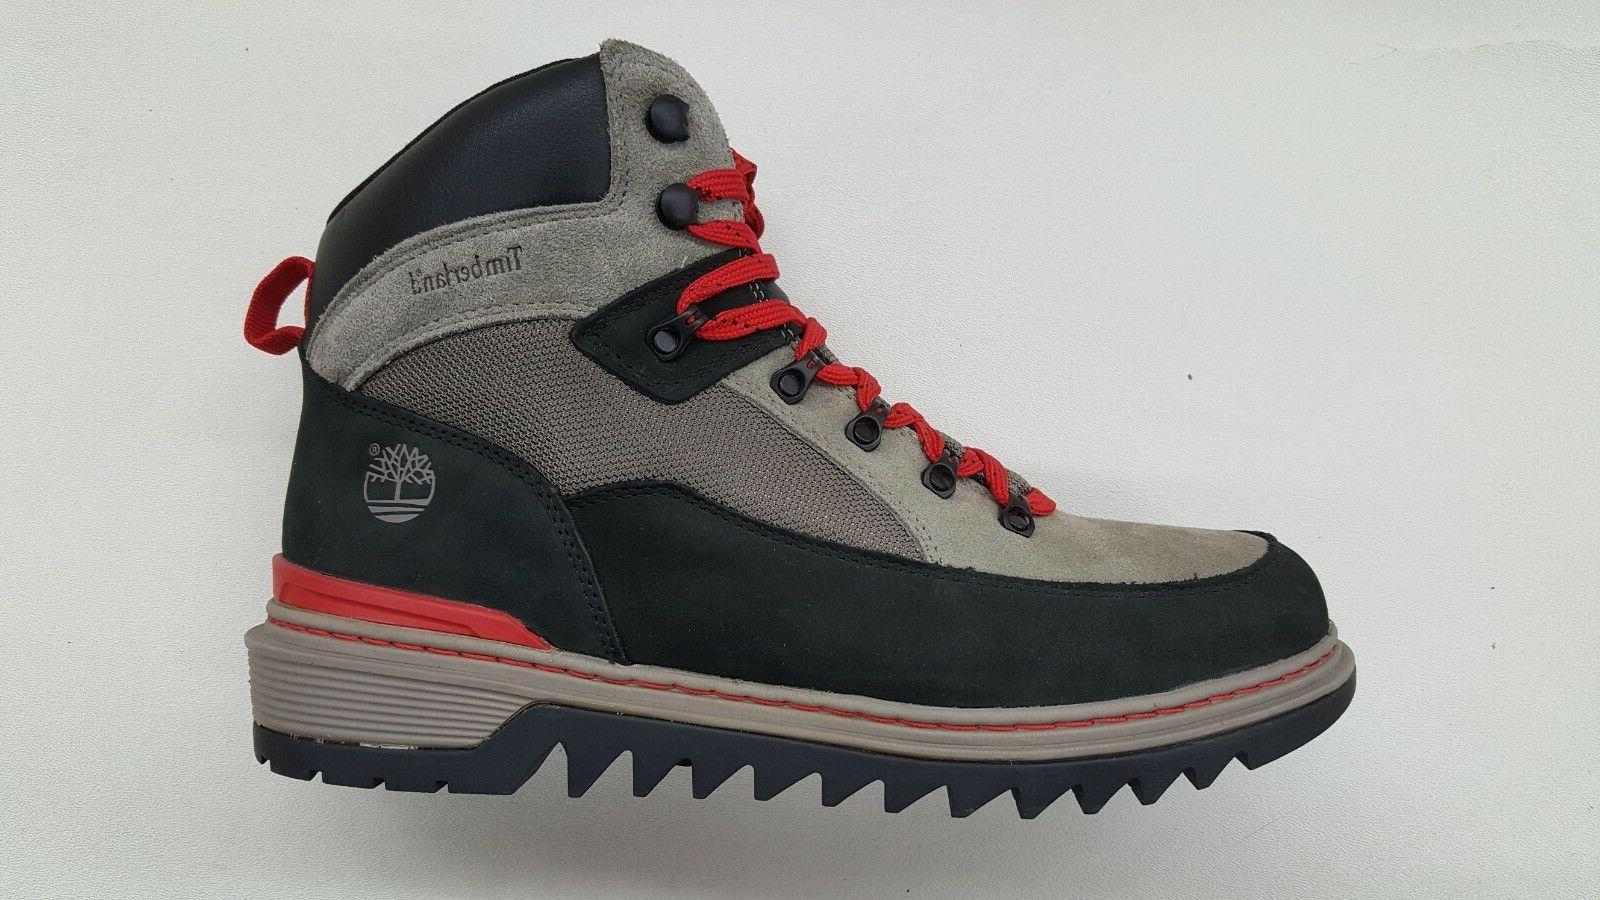 TIMBERLAND SHELBURNE SPORT GREY BLACK RED MENS SIZE HIKING B